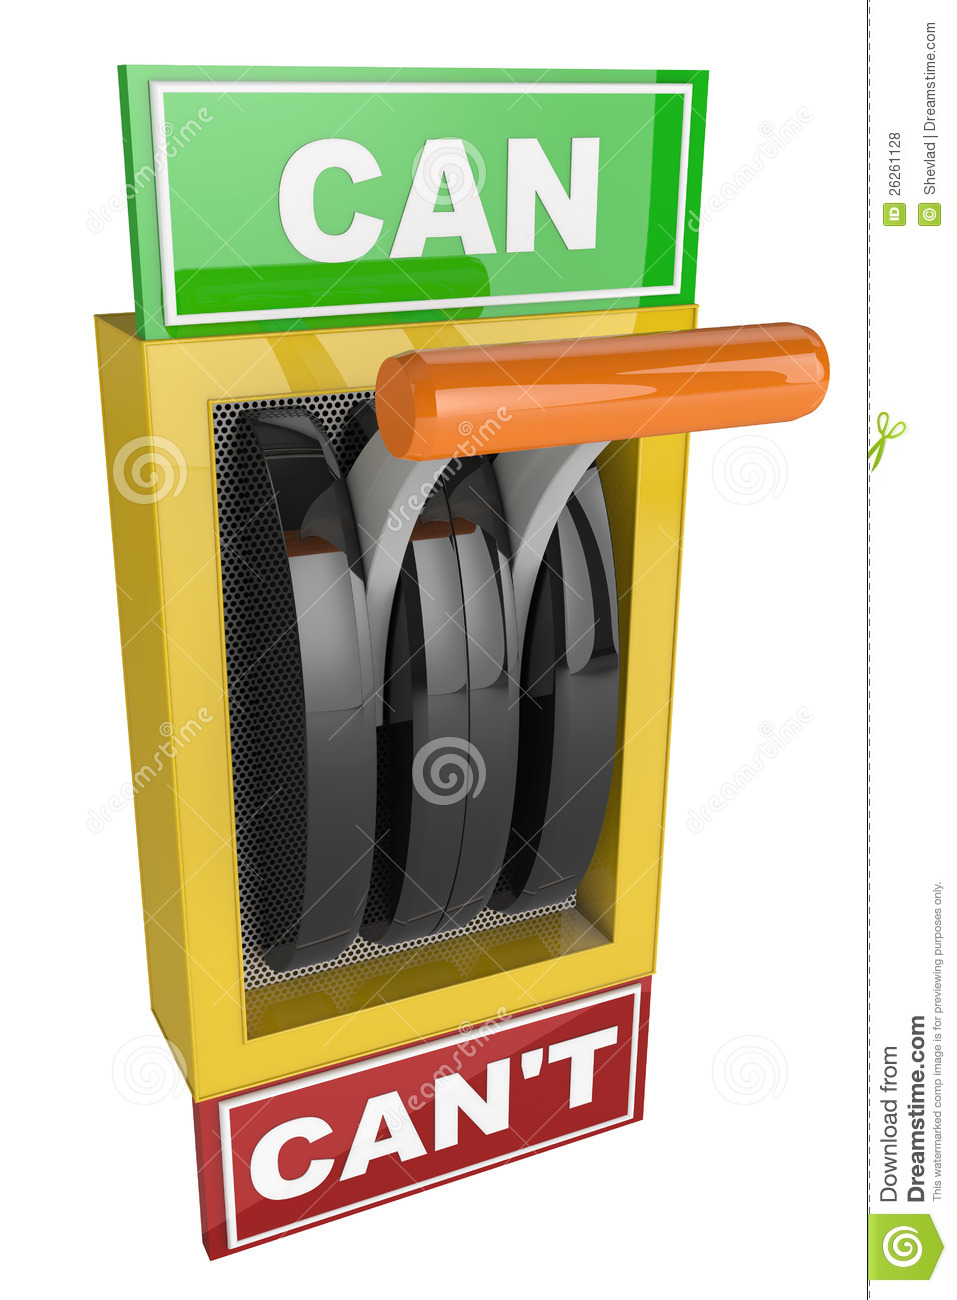 Switch Can and Can t